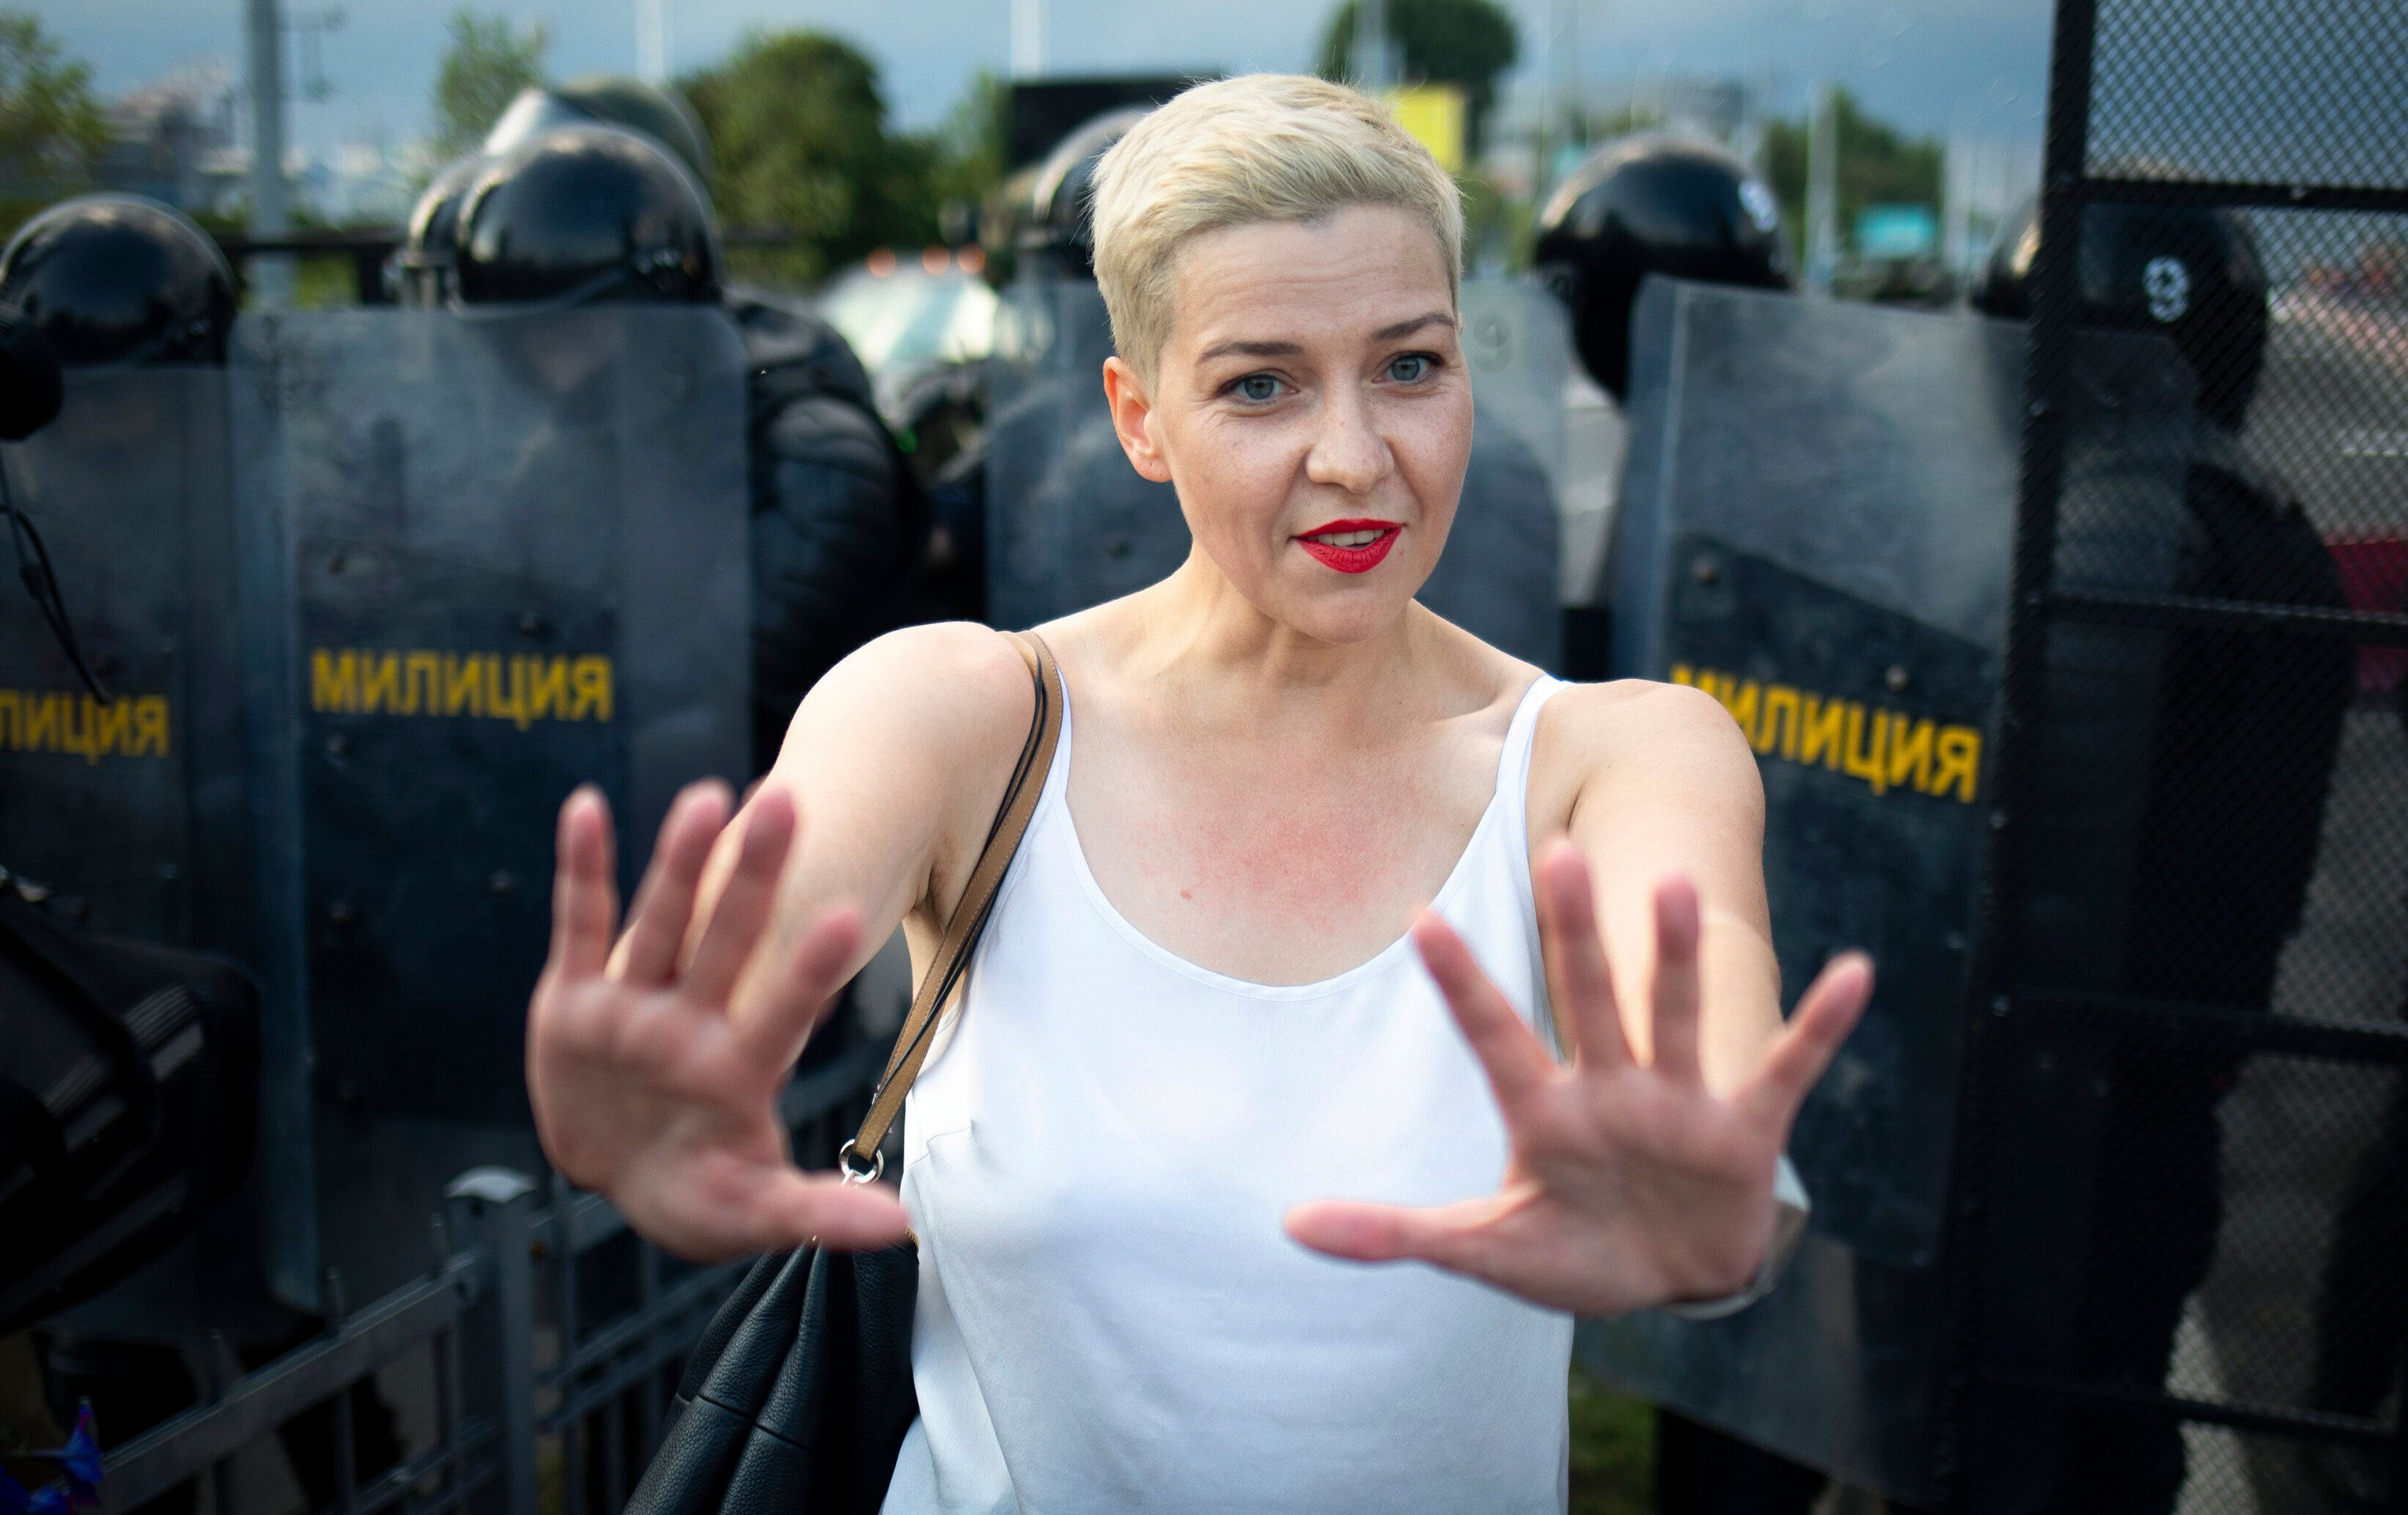 Maria Kolesnikova, one of Belarus' opposition leaders, center, gestures during a rally in Minsk, Belarus, on Aug. 30, 2020.